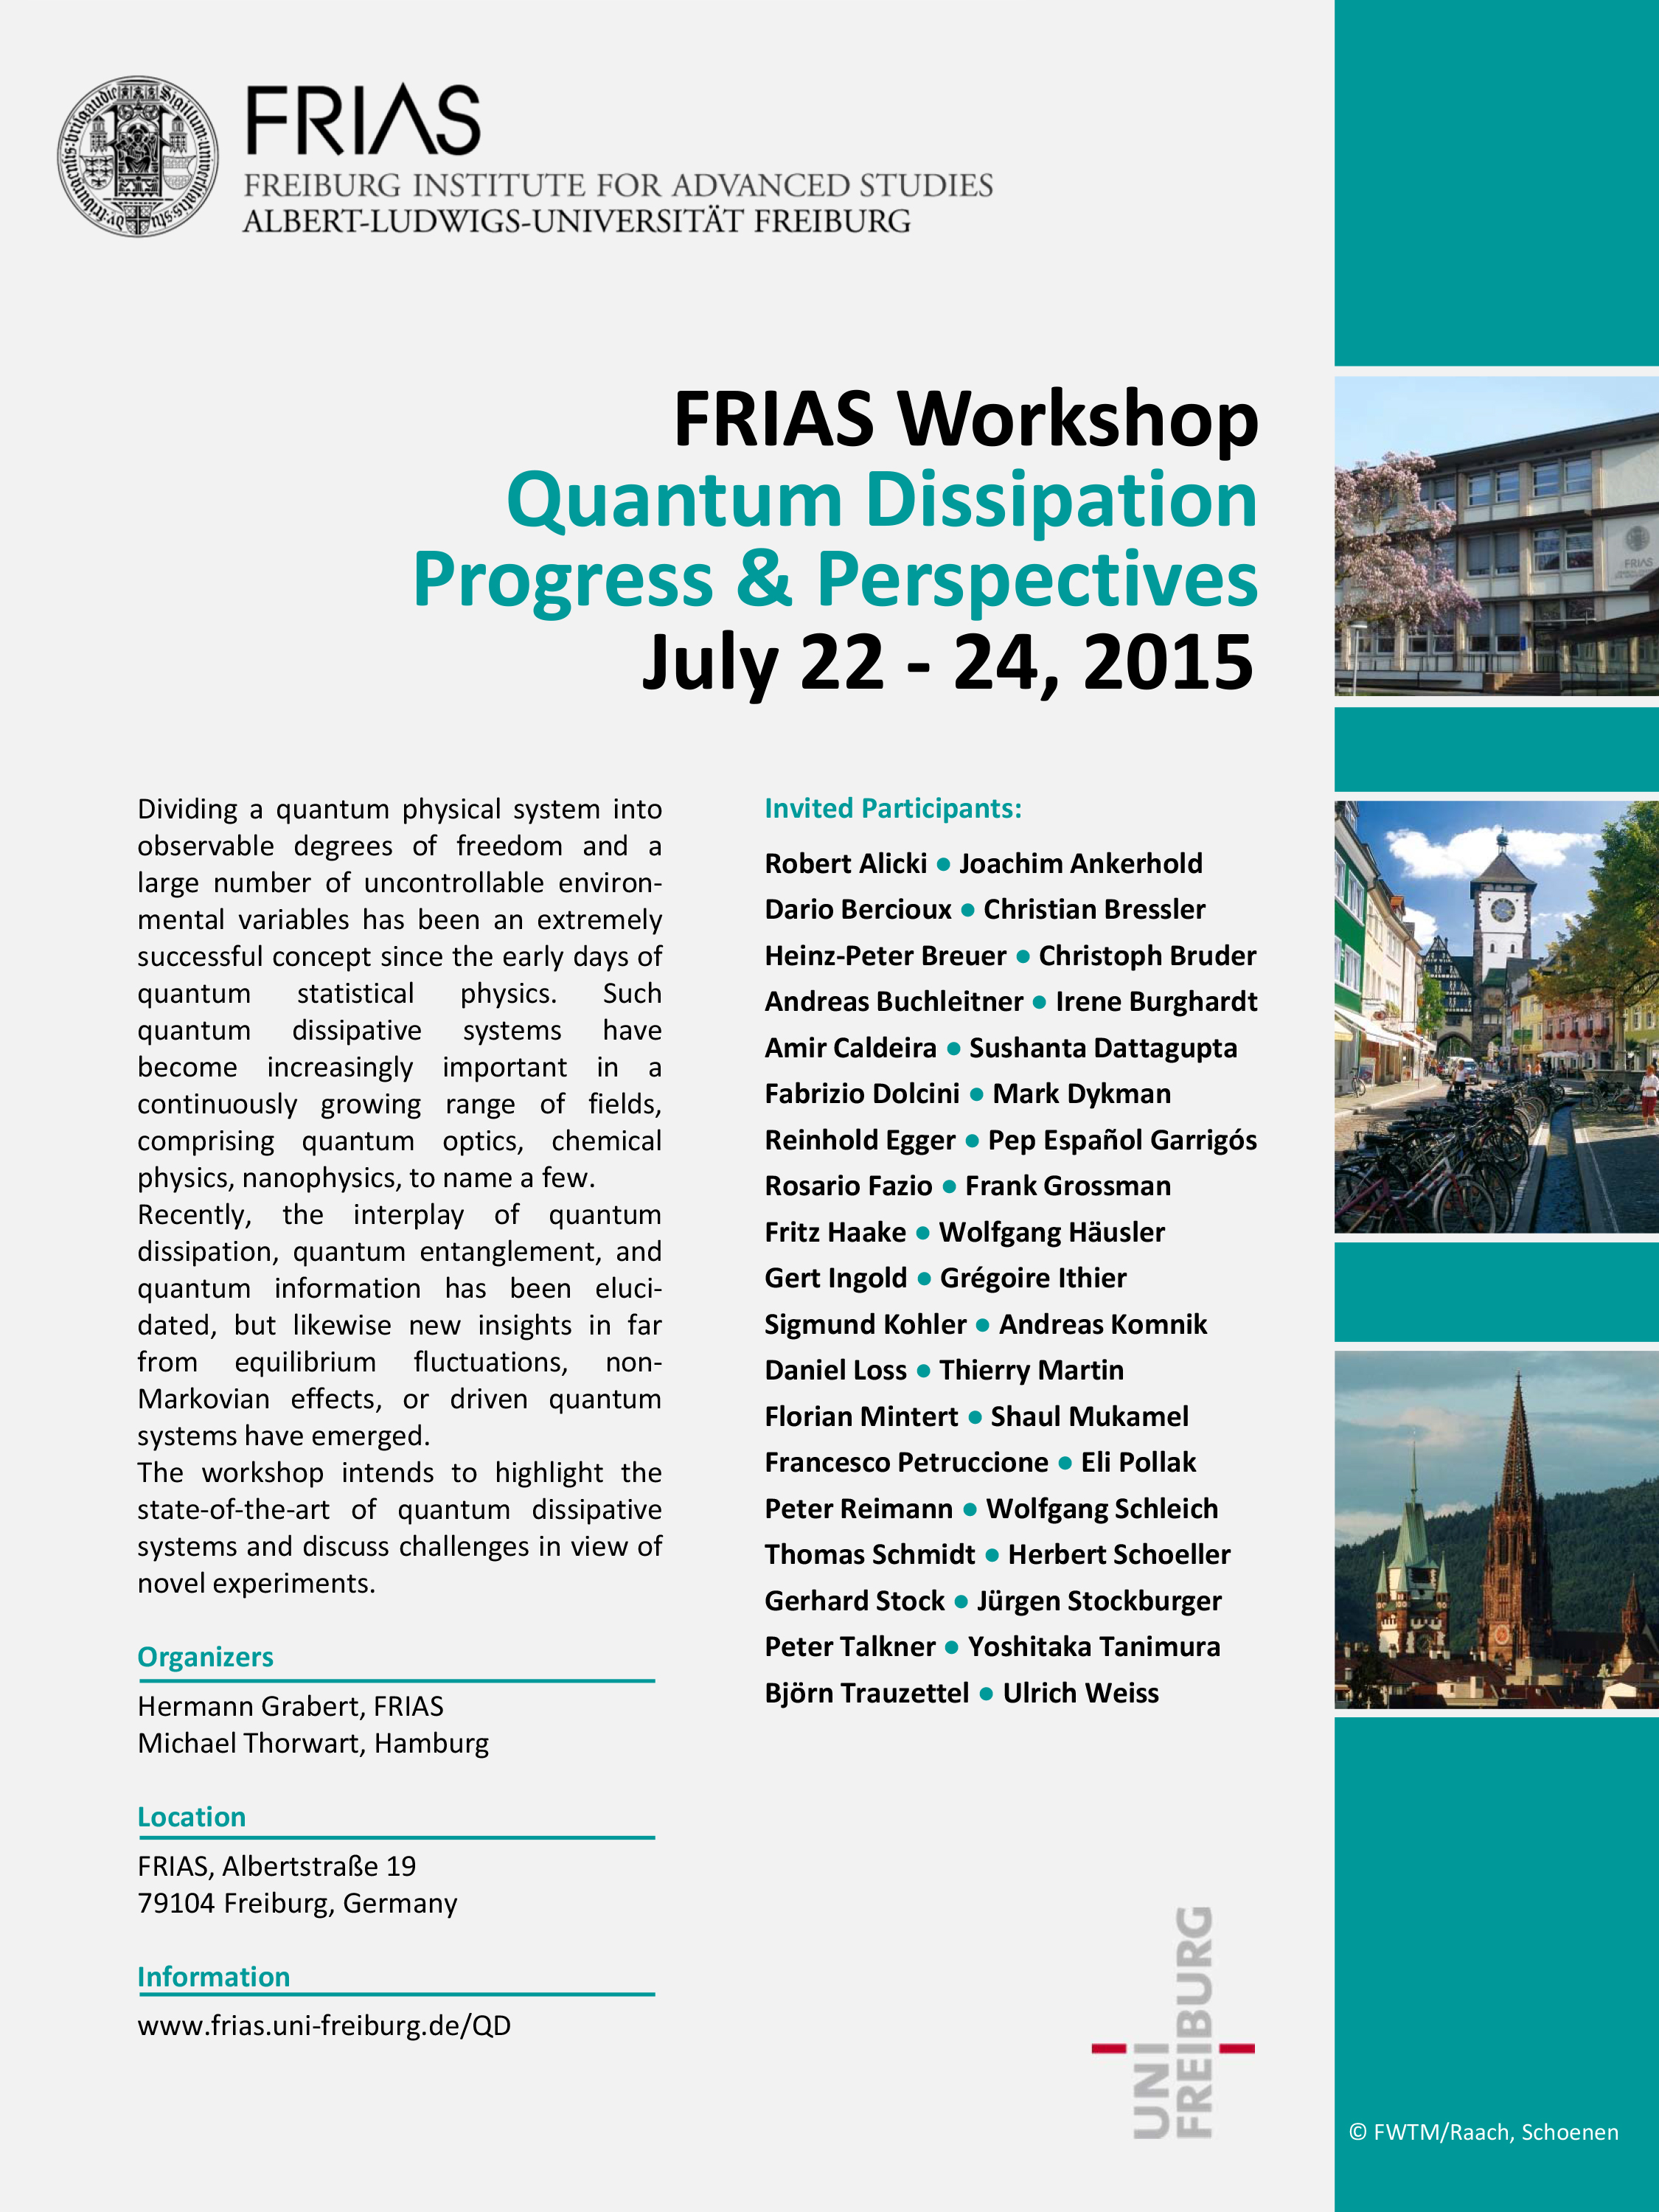 Quantum Dissipation: Progress and Perspectives, July 22-24, 2015